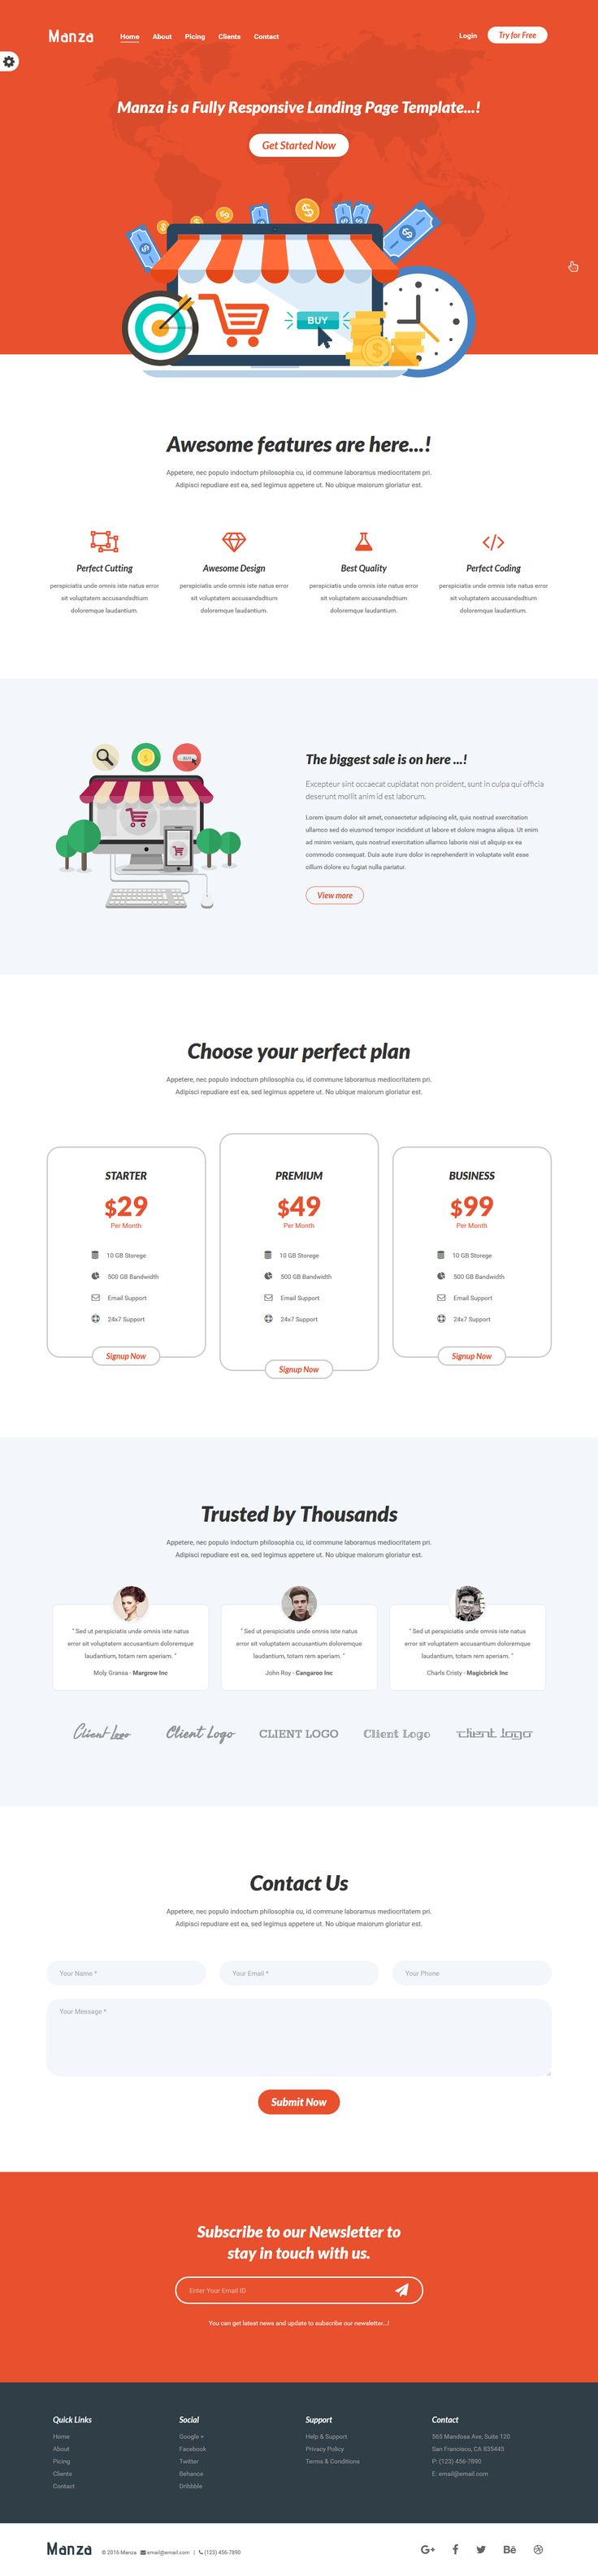 Manza - Responsive Bootstrap Landing Page Template. Live Preview & Download: https://themeforest.net/item/manza-responsive-bootstrap-landing-page-template/16767493?ref=ksioks